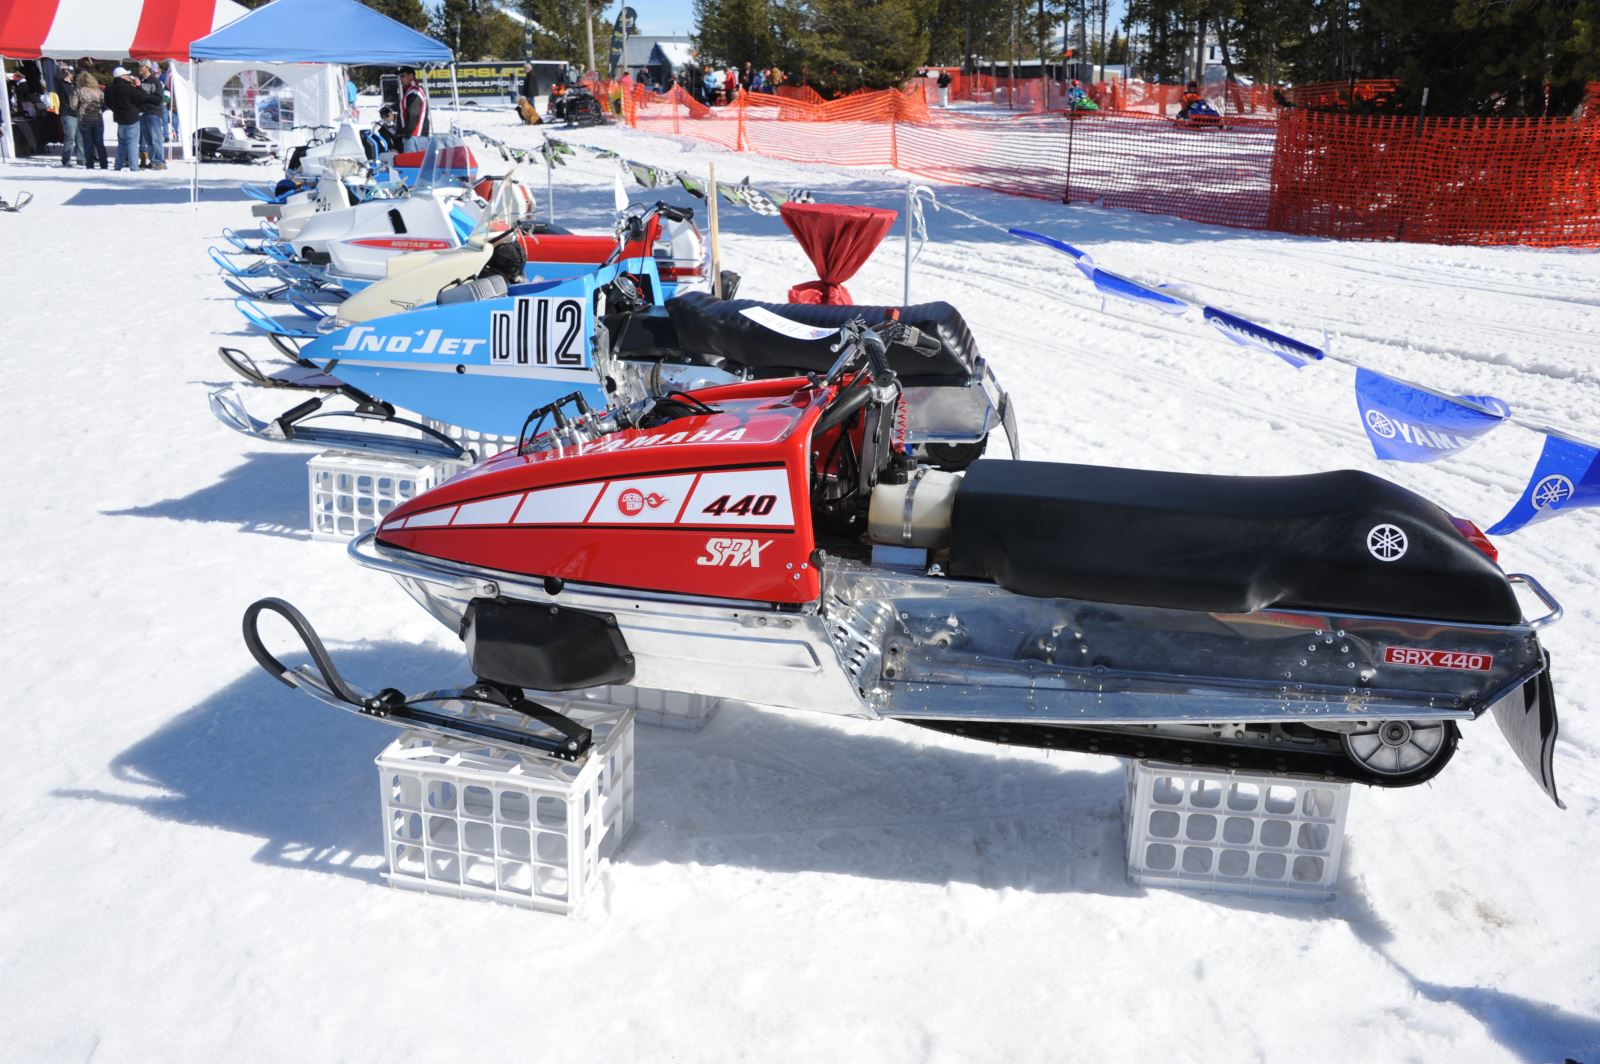 Vintage snowmobile show coming to utah this month for Vintage sleds